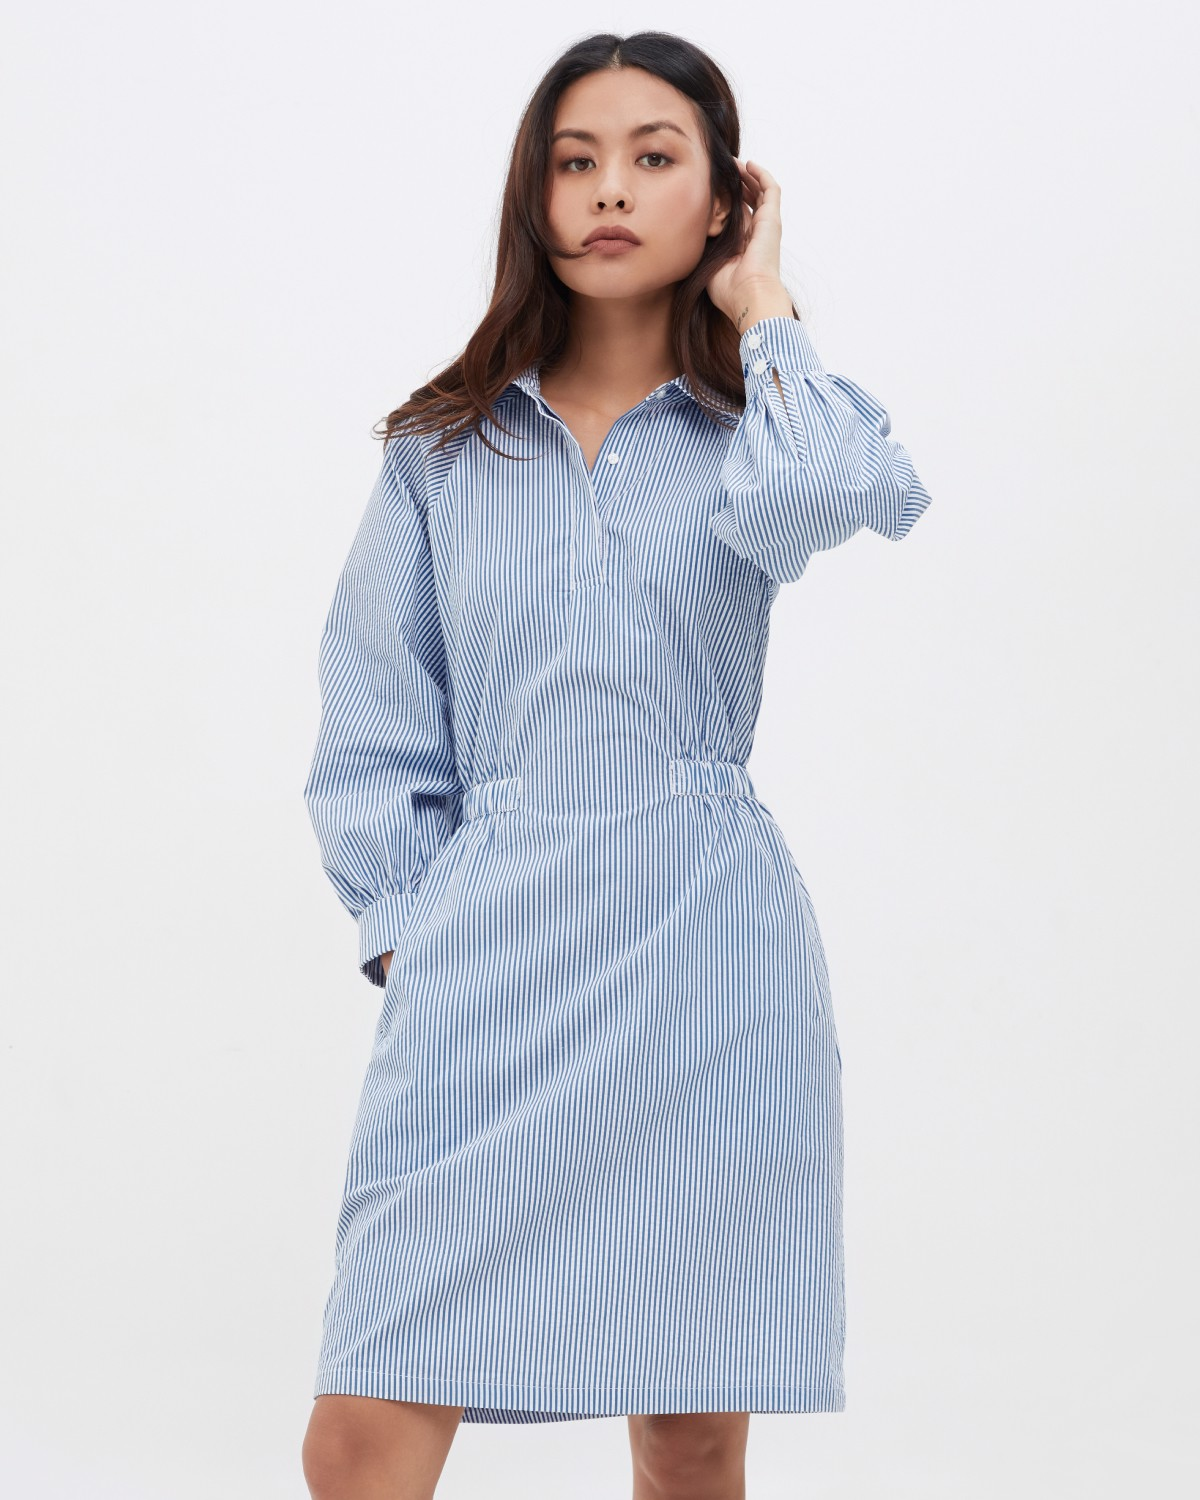 Puff Sleeve Dress - Pretty Blue Stripe